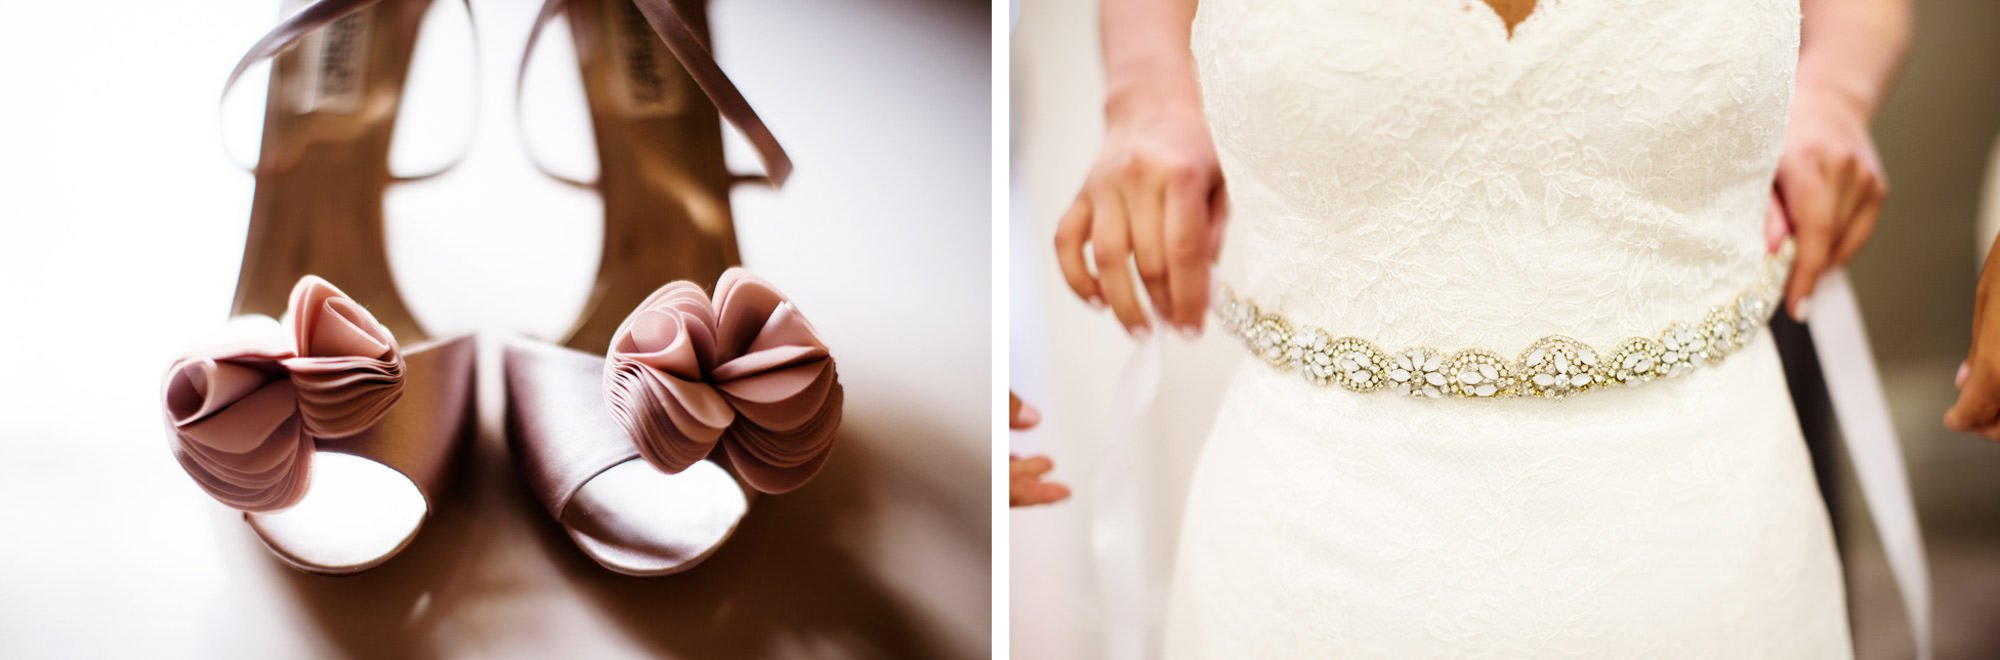 Details of shoes and the bride's dress.